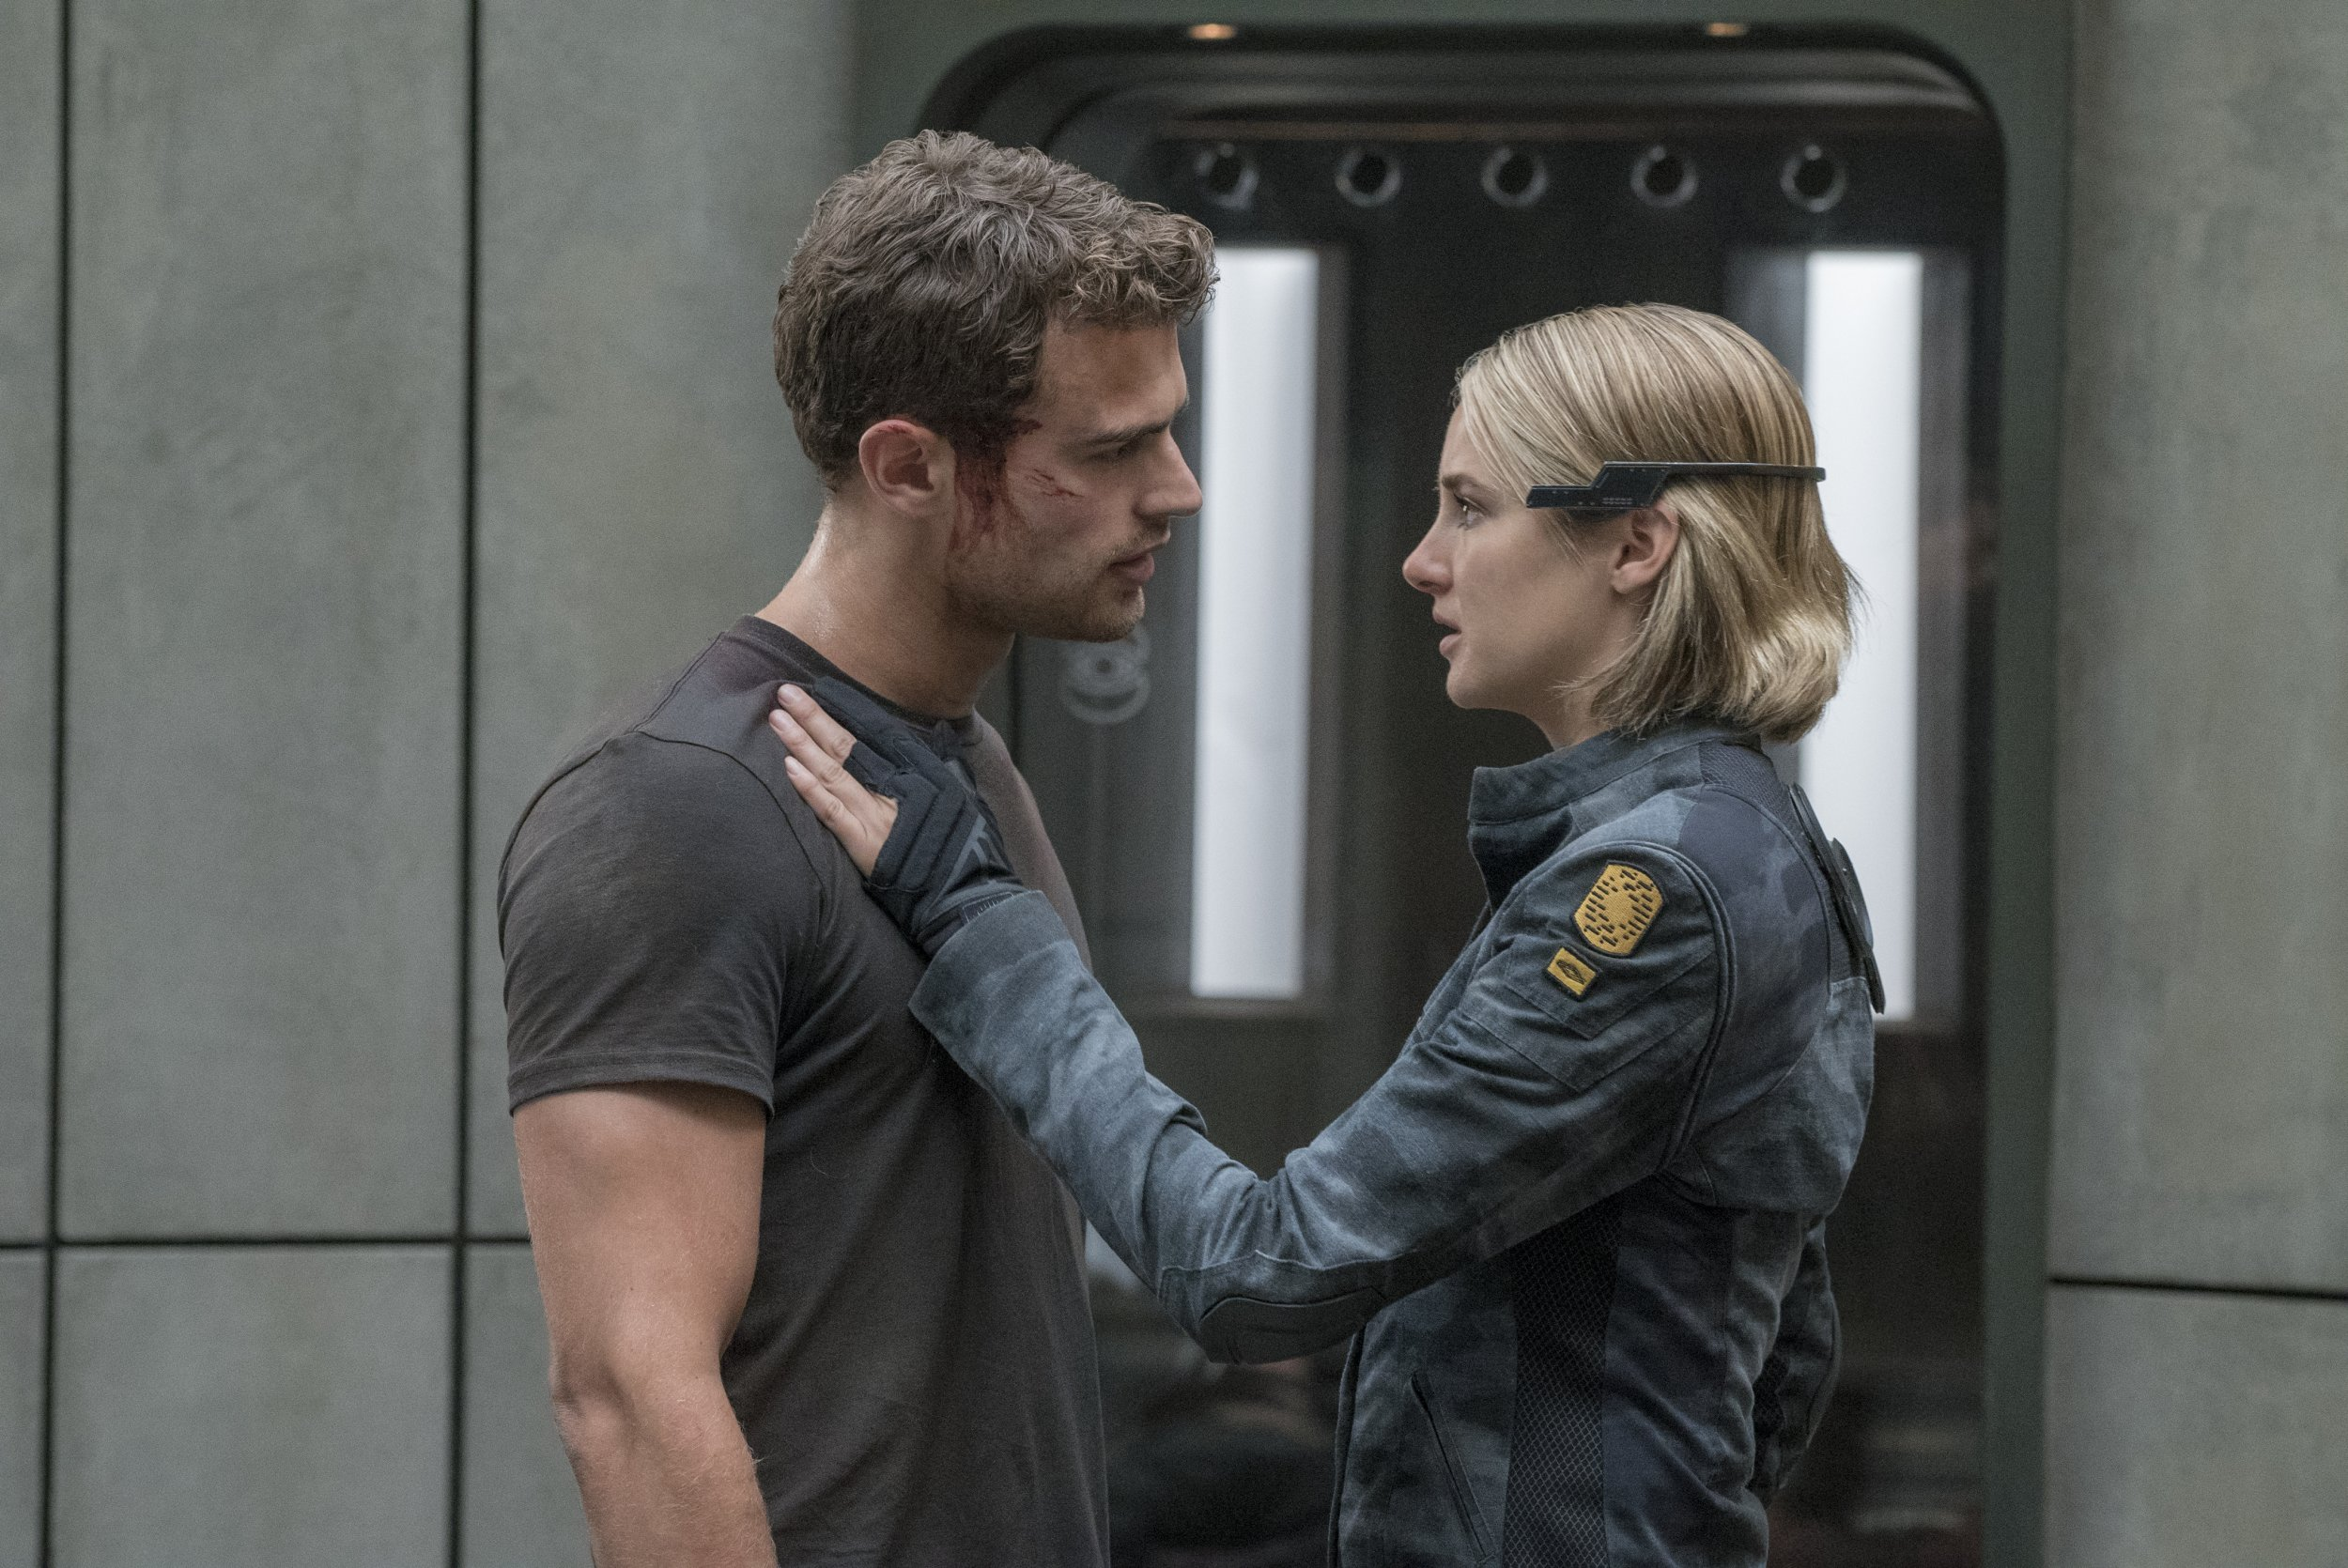 The Divergent Series: Ascendant 'won't be released in cinemas'